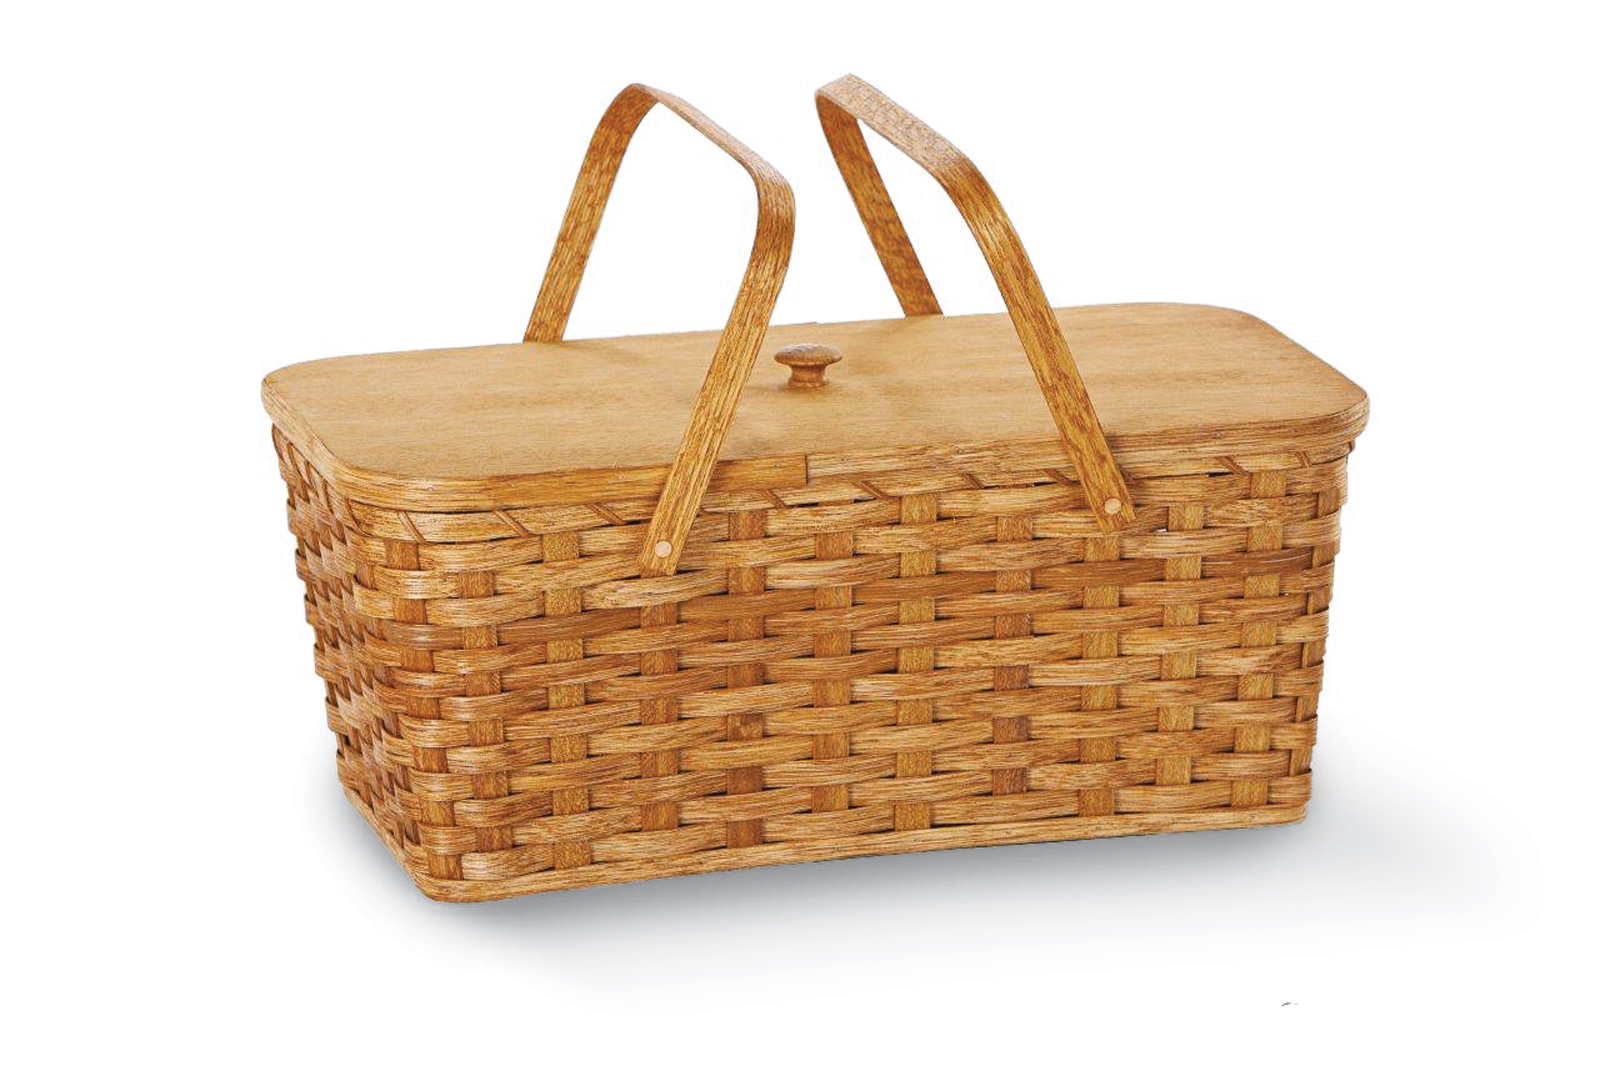 The Liberty Americana Picnic Basket by Picnic Plus, made in Amish country in Ohio.